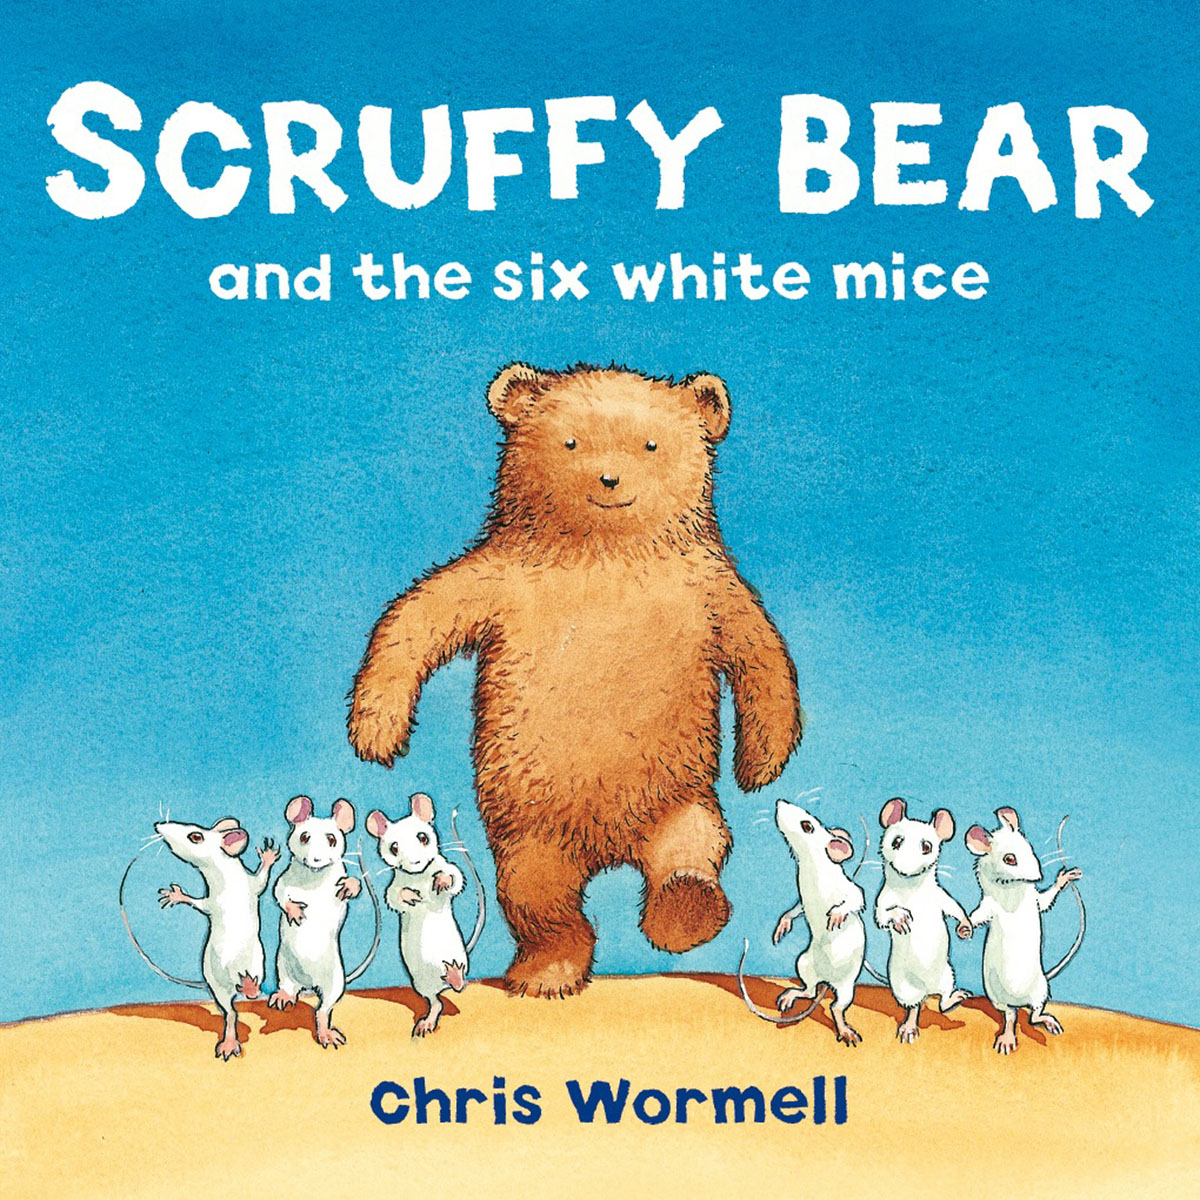 Scruffy Bear and the Six White Mice runner